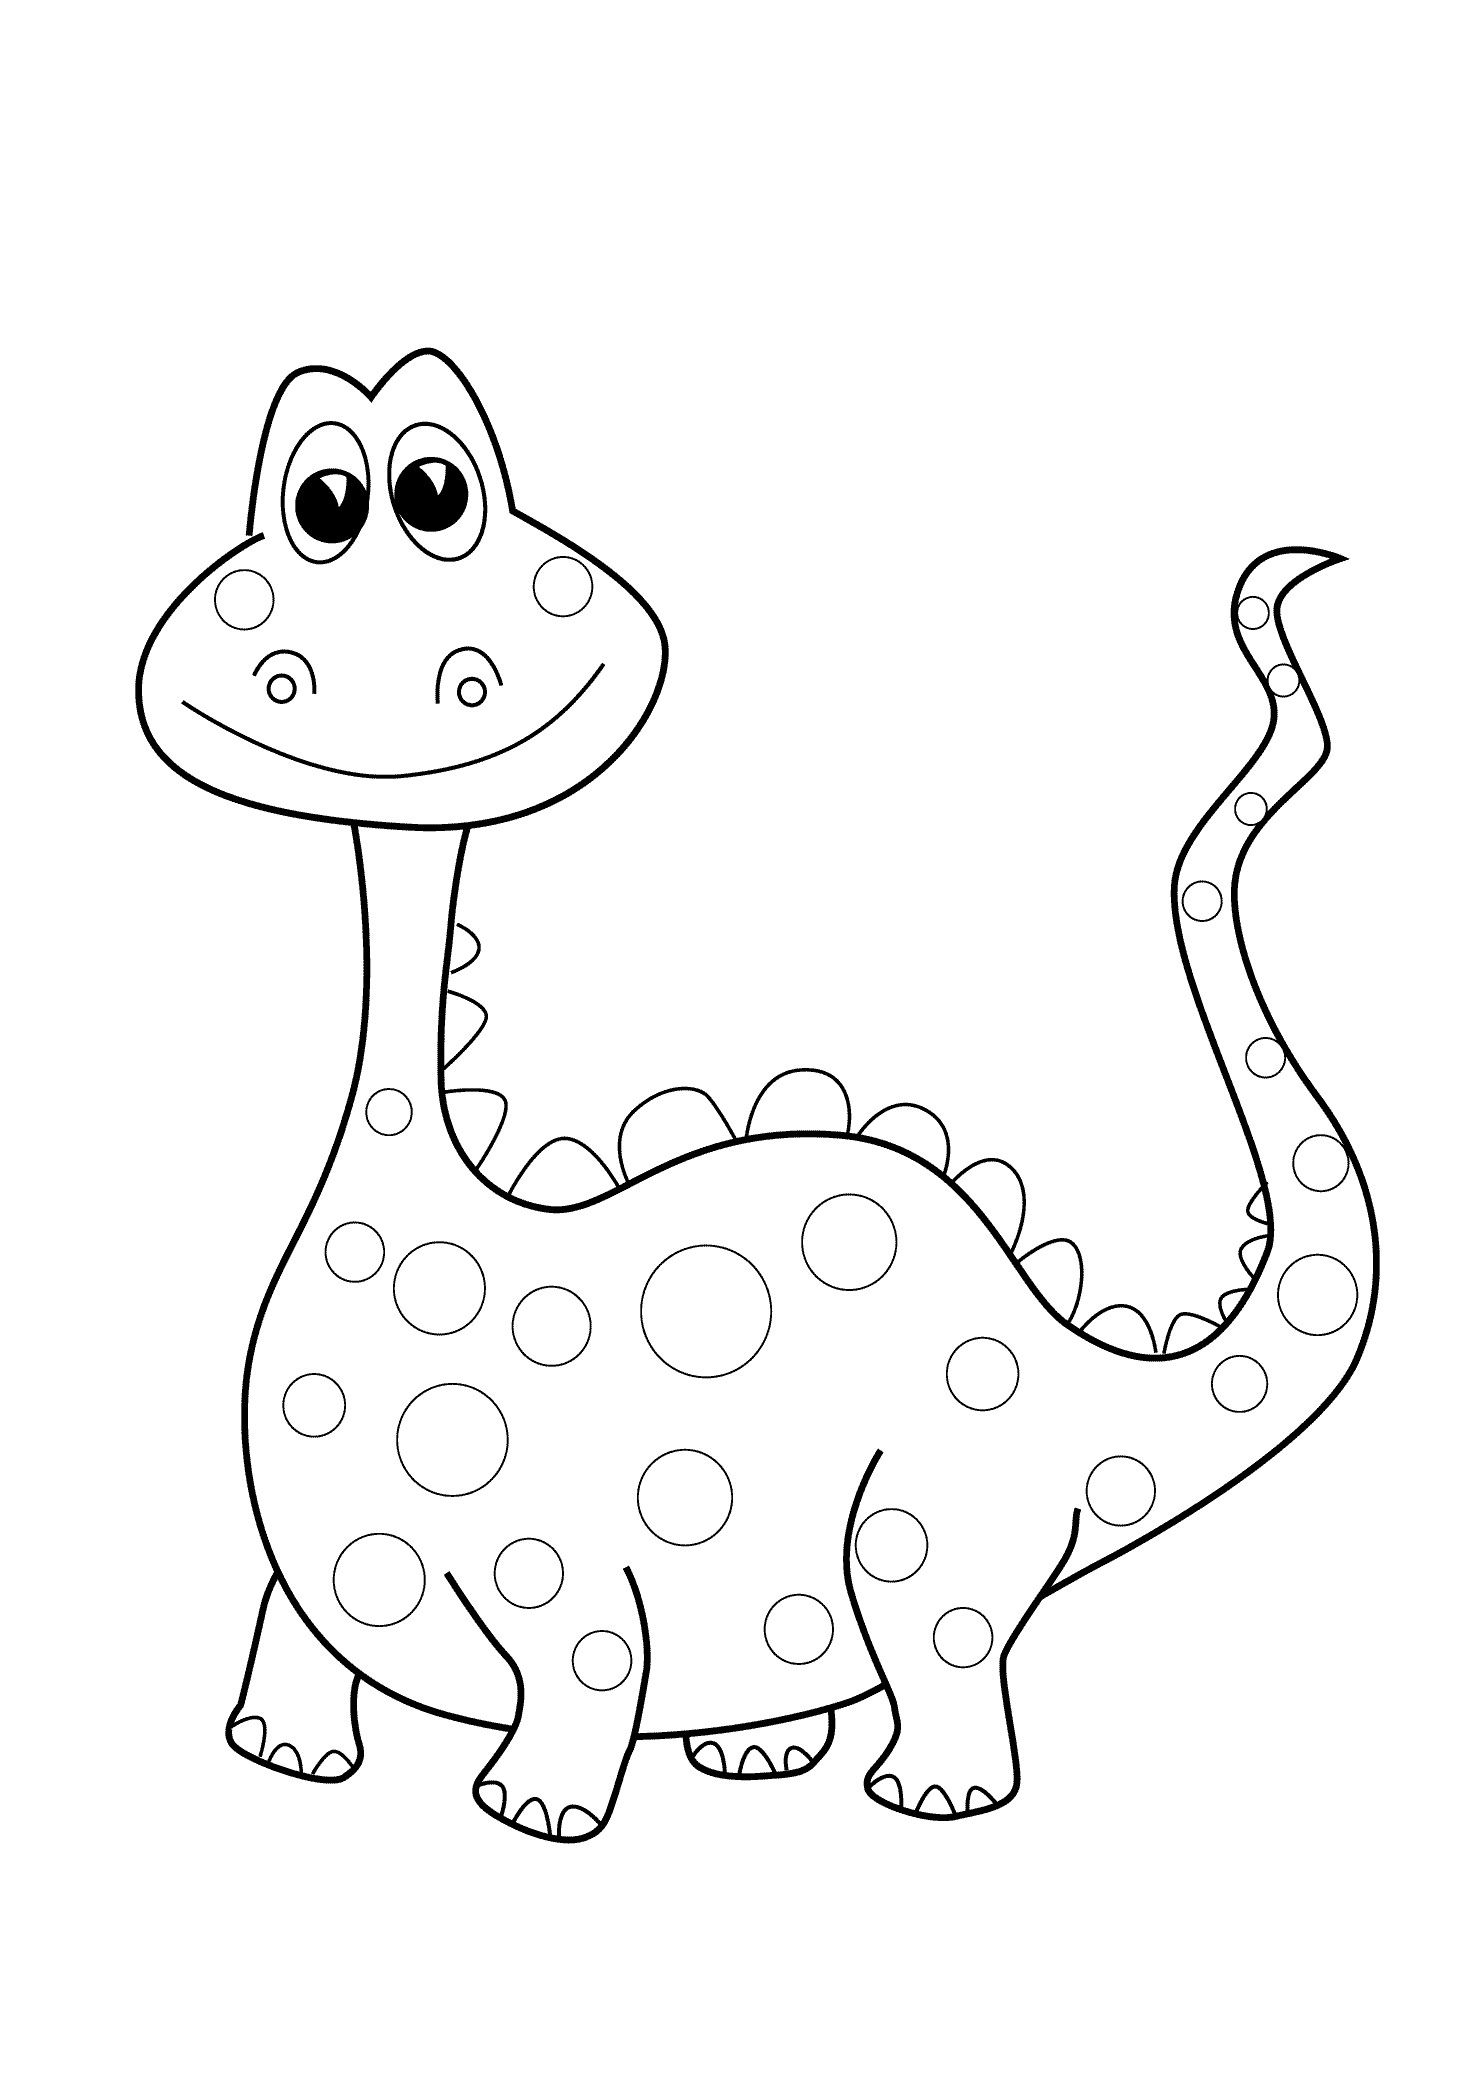 dinosaur coloring pages for toddlers dinosaur coloring pages for kindergarten, dinosaur coloring pages  dinosaur coloring pages for toddlers